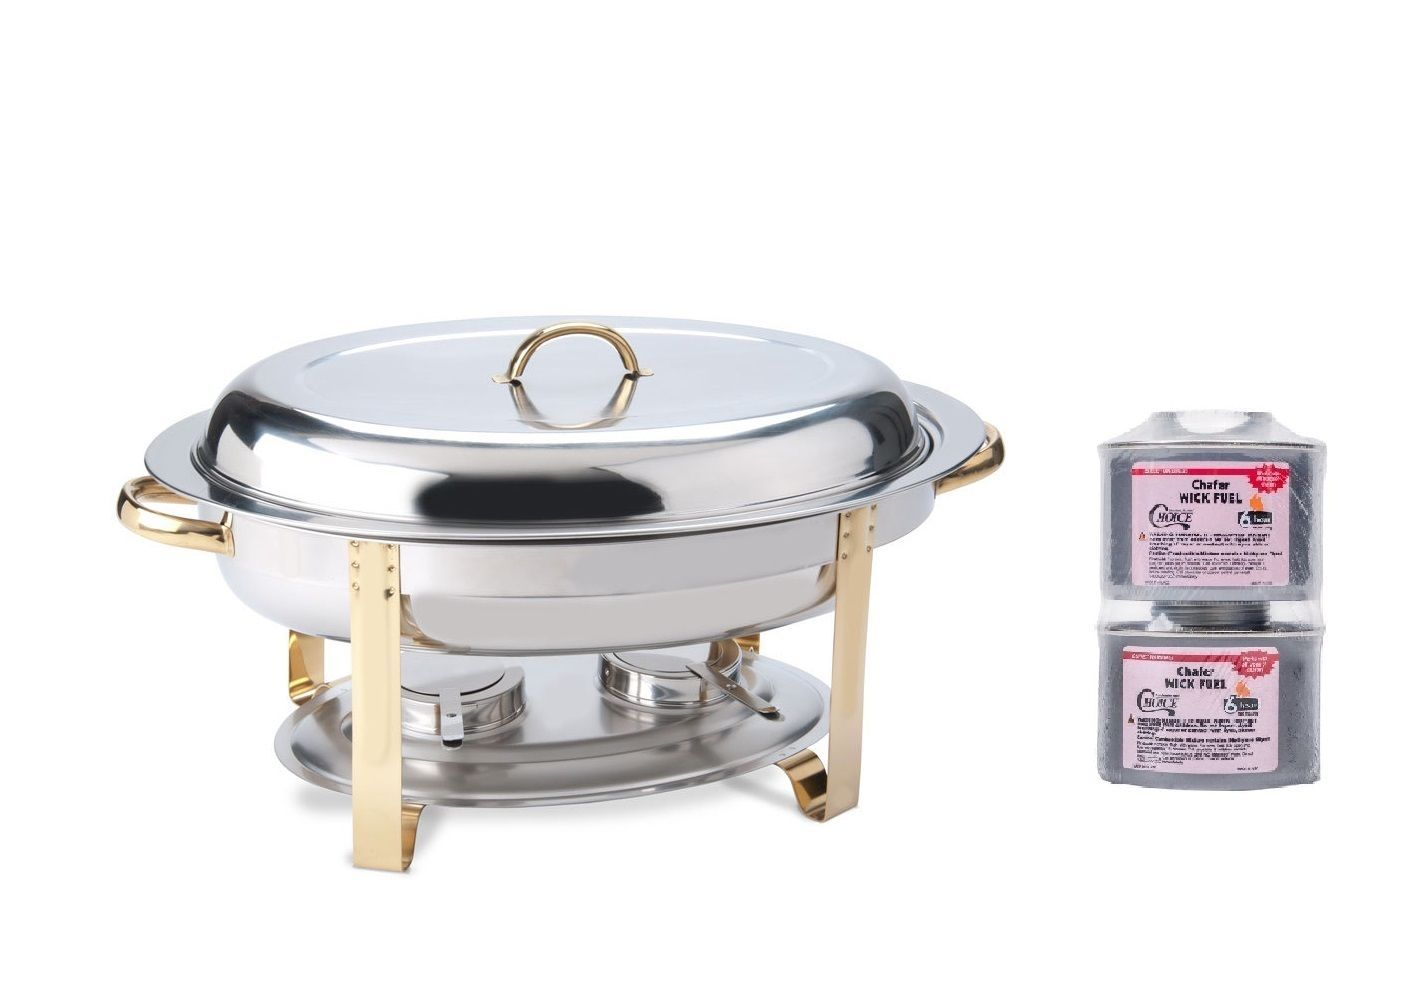 New  Deluxe 6 Qt. Oval Gold Accent Chafer Chafing Set Lowest $ Guarantee Bonus